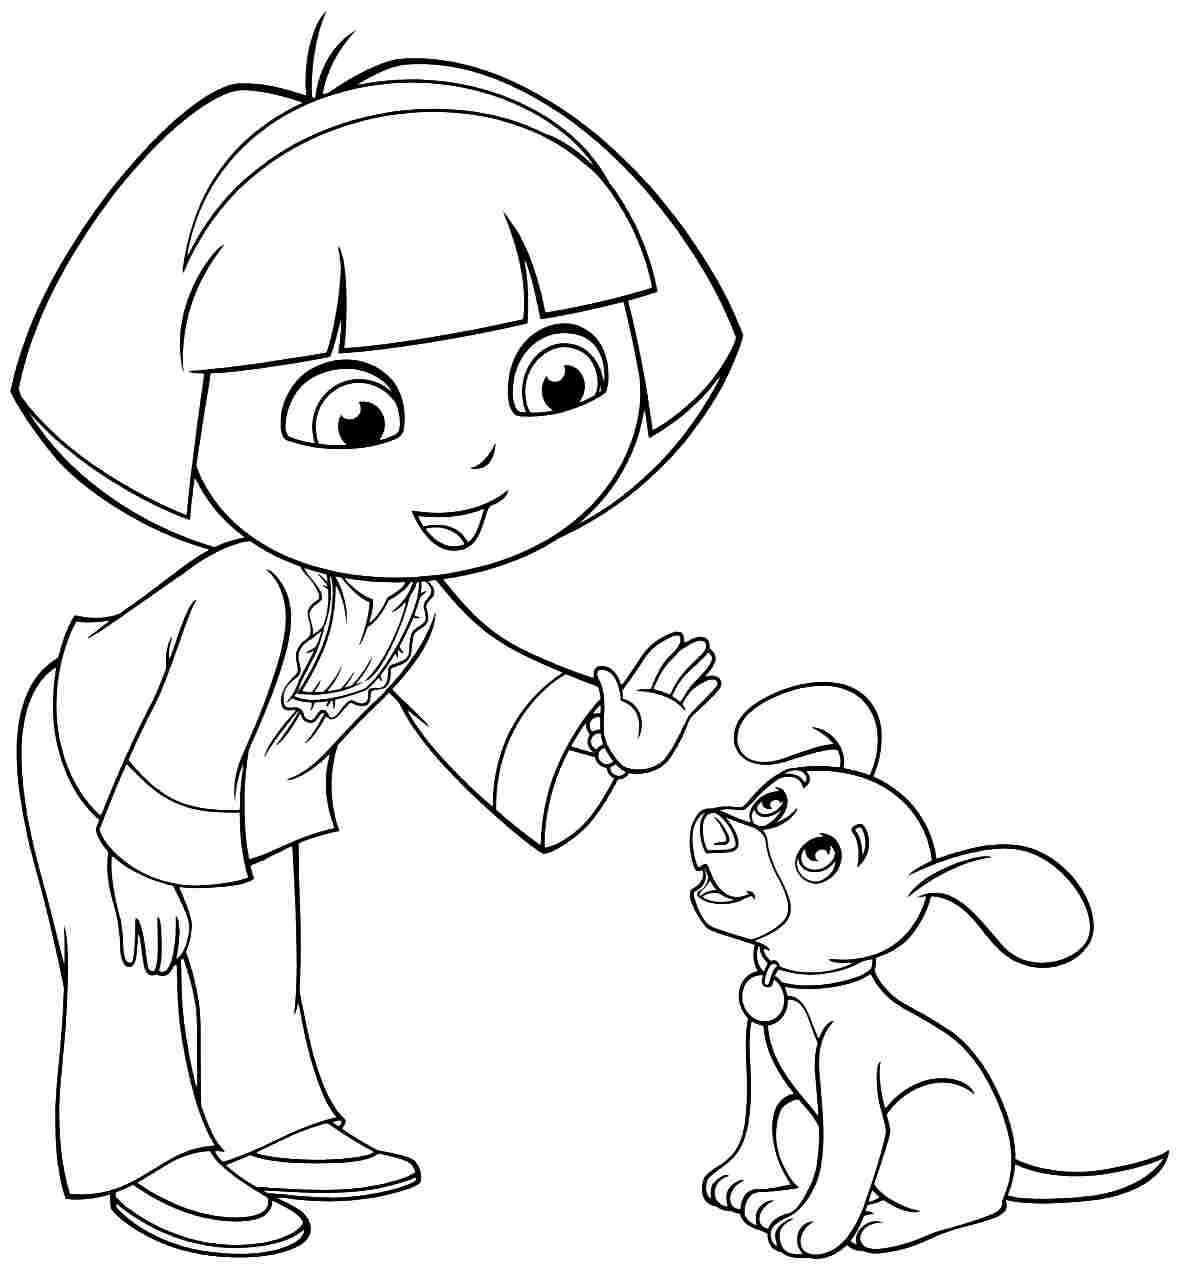 Dora And Puppy Coloring Page For Girls With Images